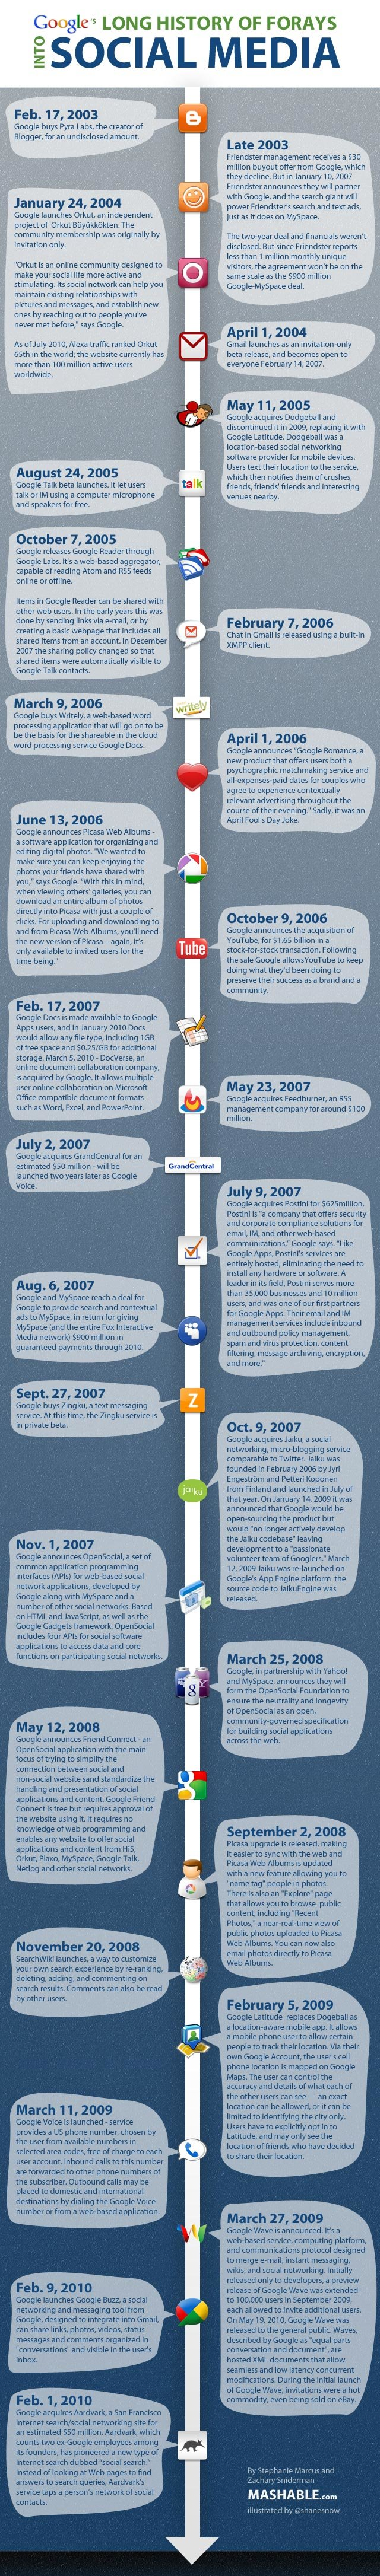 Google's long history of forays into social media #infographic